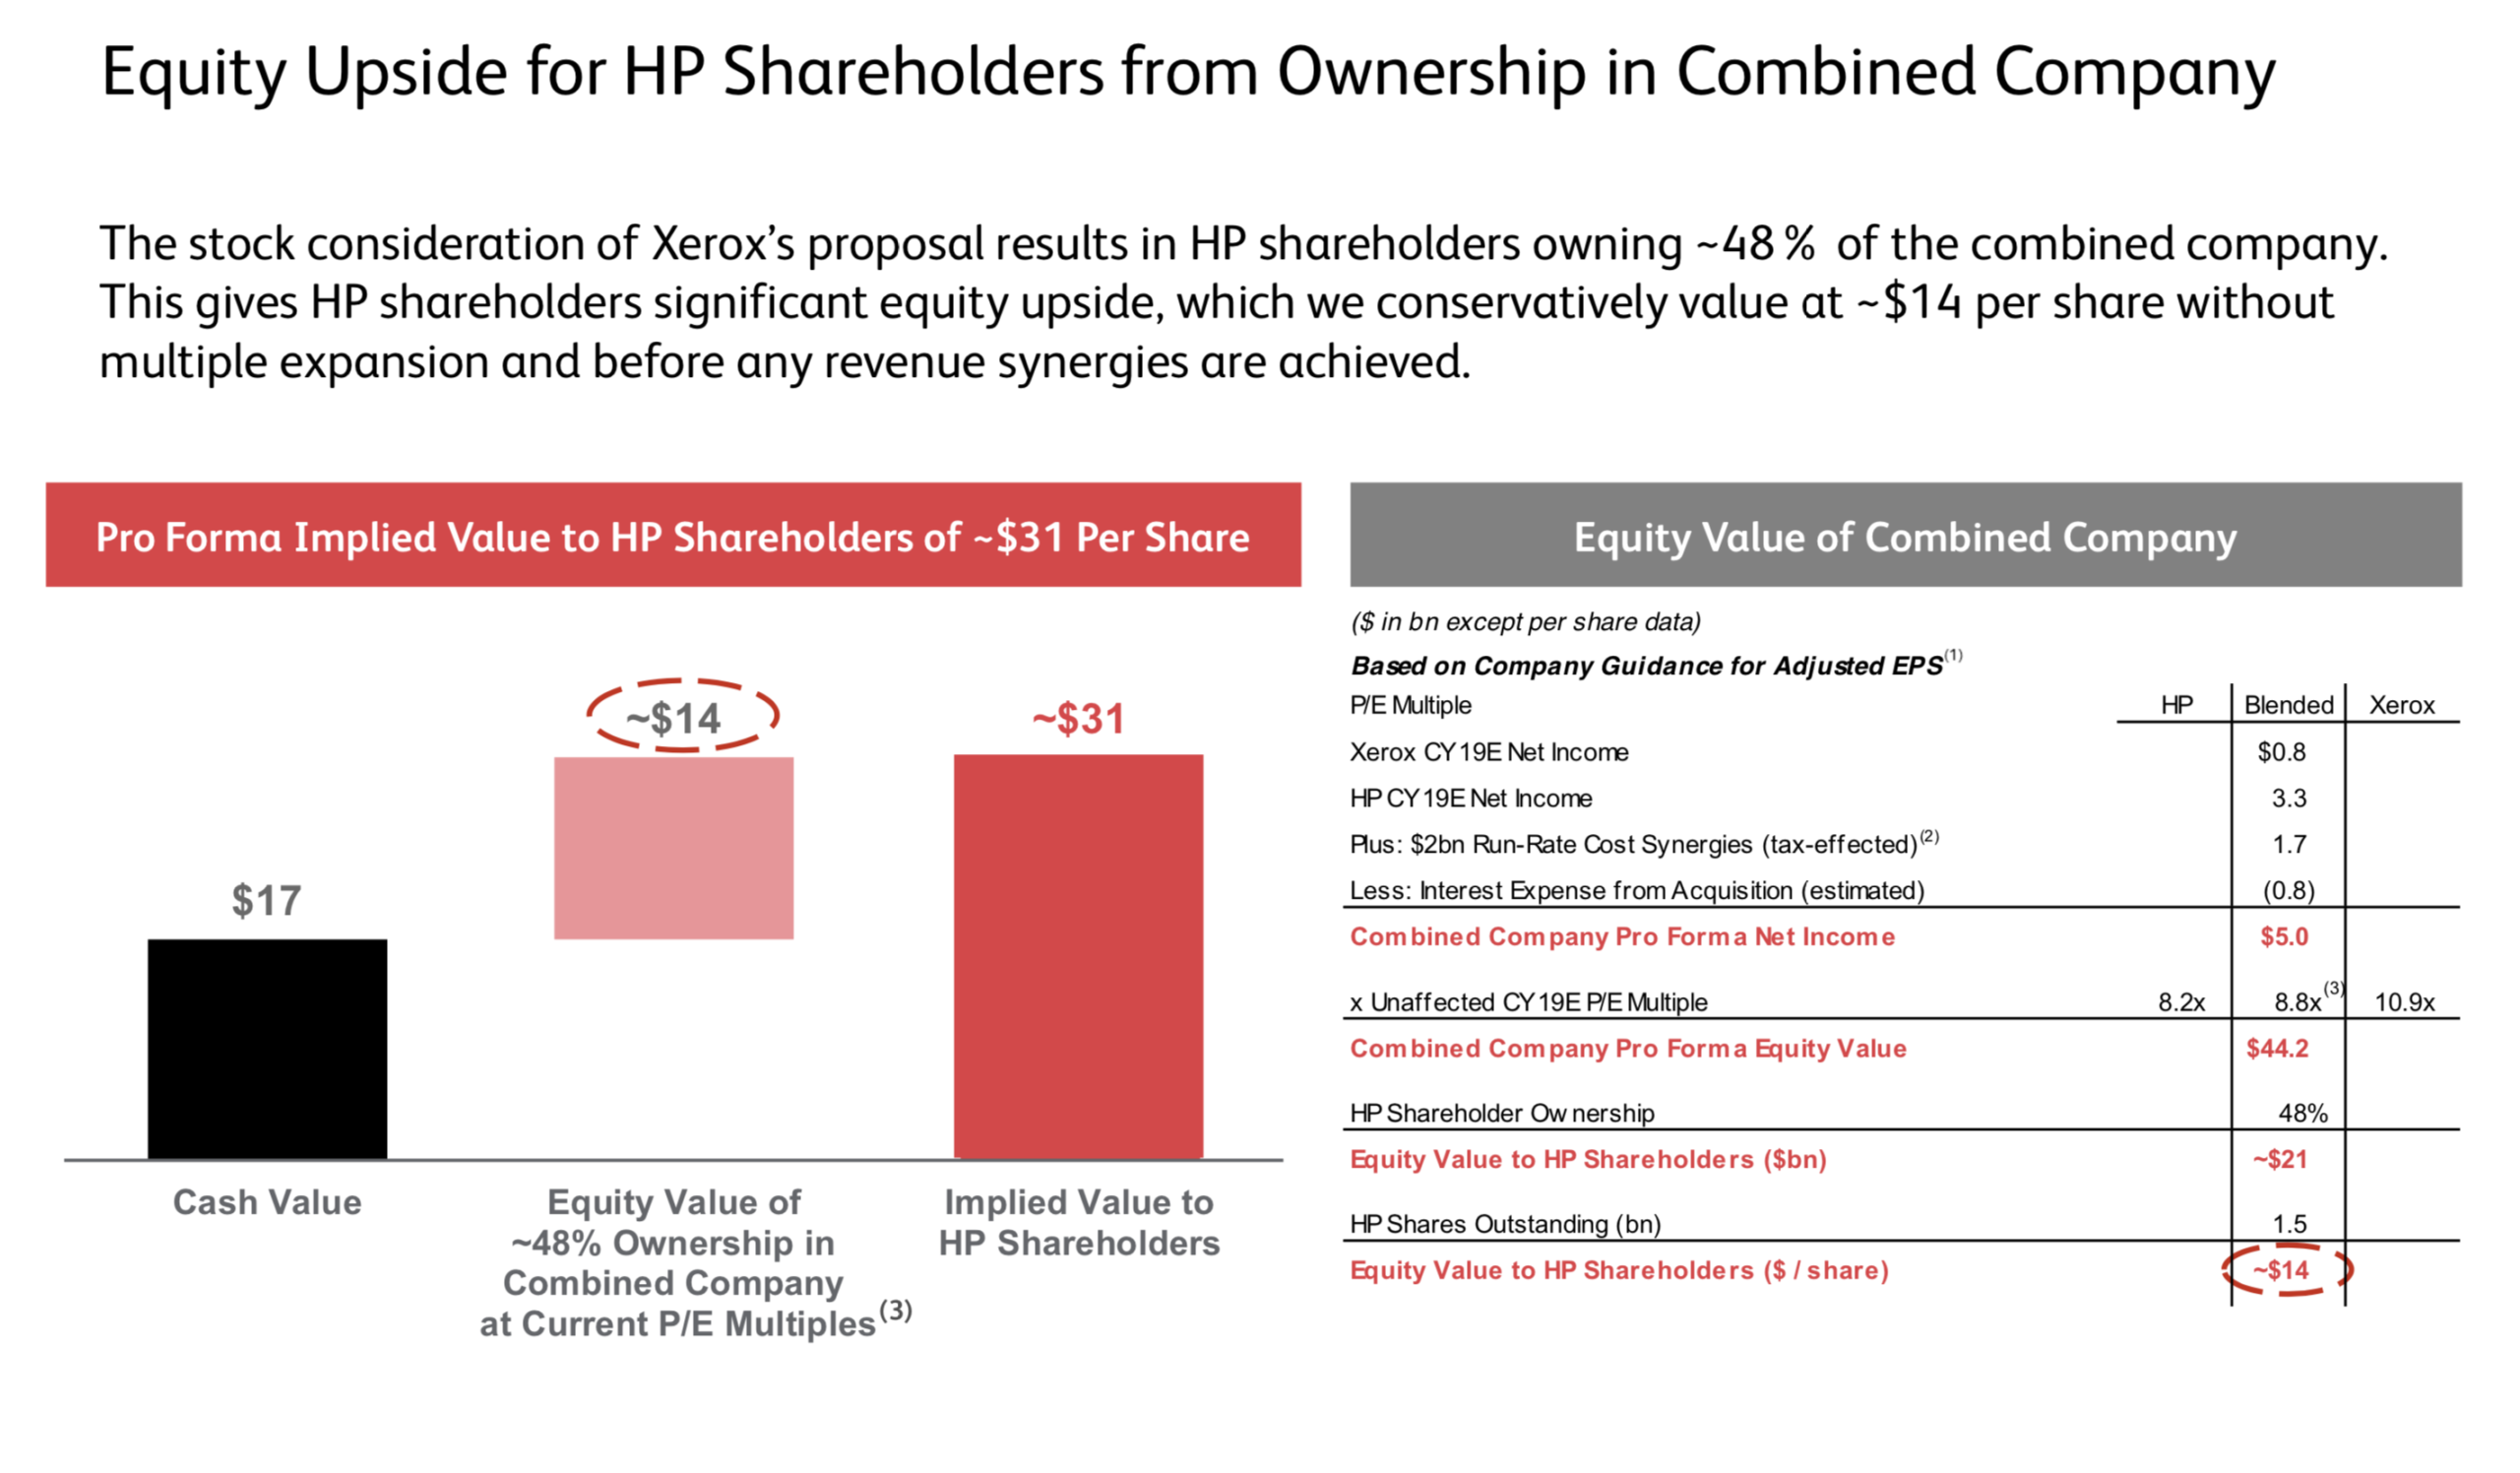 Xerox implied equity value offer to HP shareholders